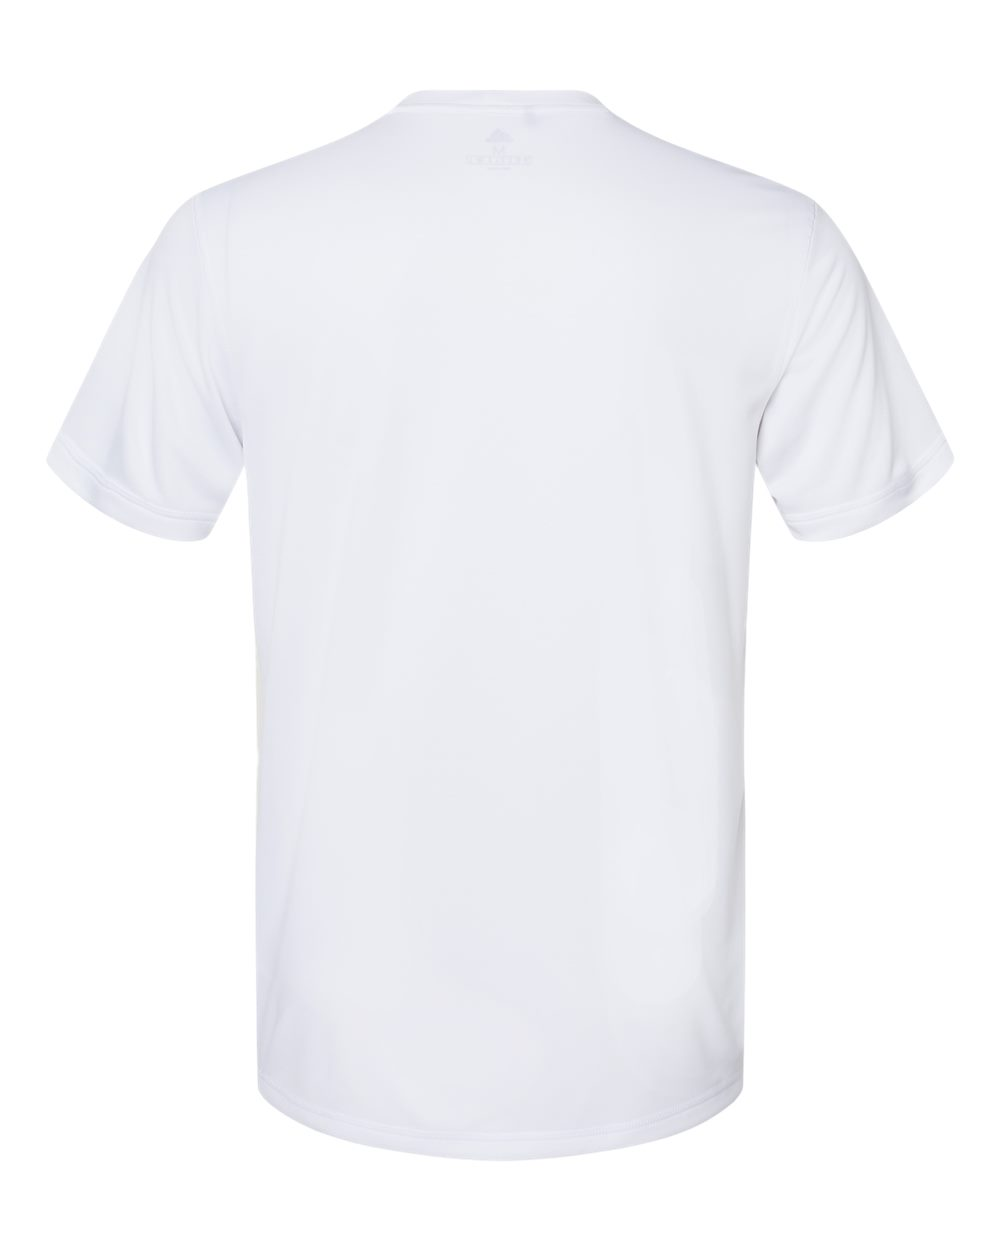 Adidas-Mens-Blank-Short-Sleeve-Polyester-Sport-T-Shirt-A376-up-to-4XL miniature 37